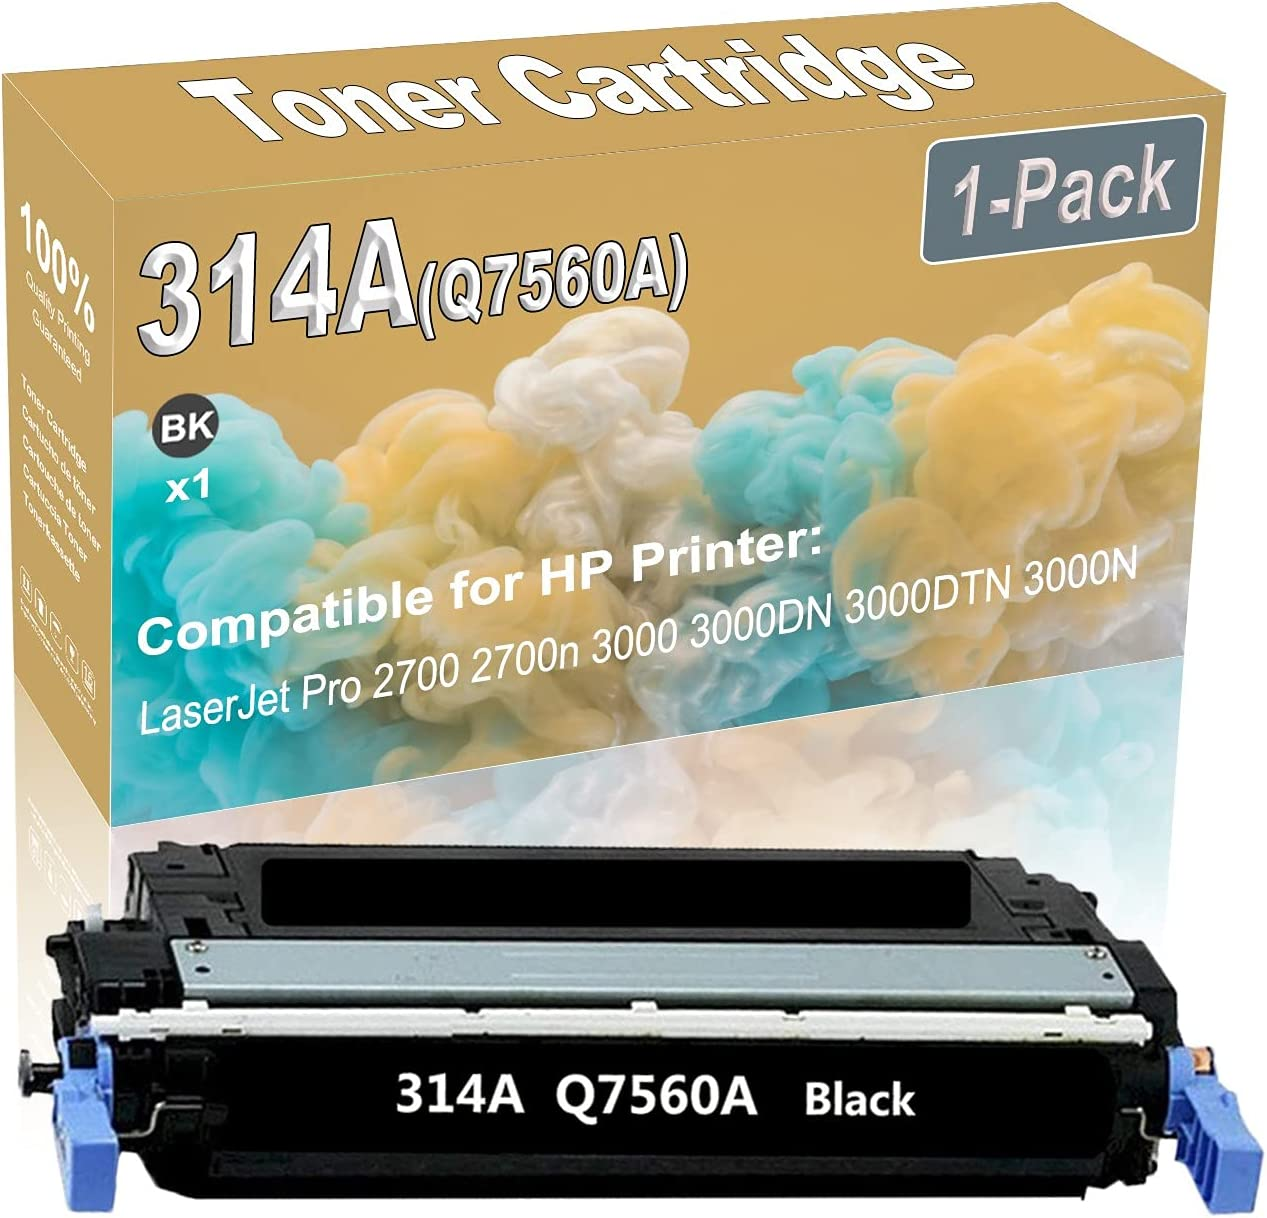 1-Pack (Black) Compatible High Yield 314A (Q7560A) Printer Toner Cartridge use for HP 2700 2700n 3000 Printers